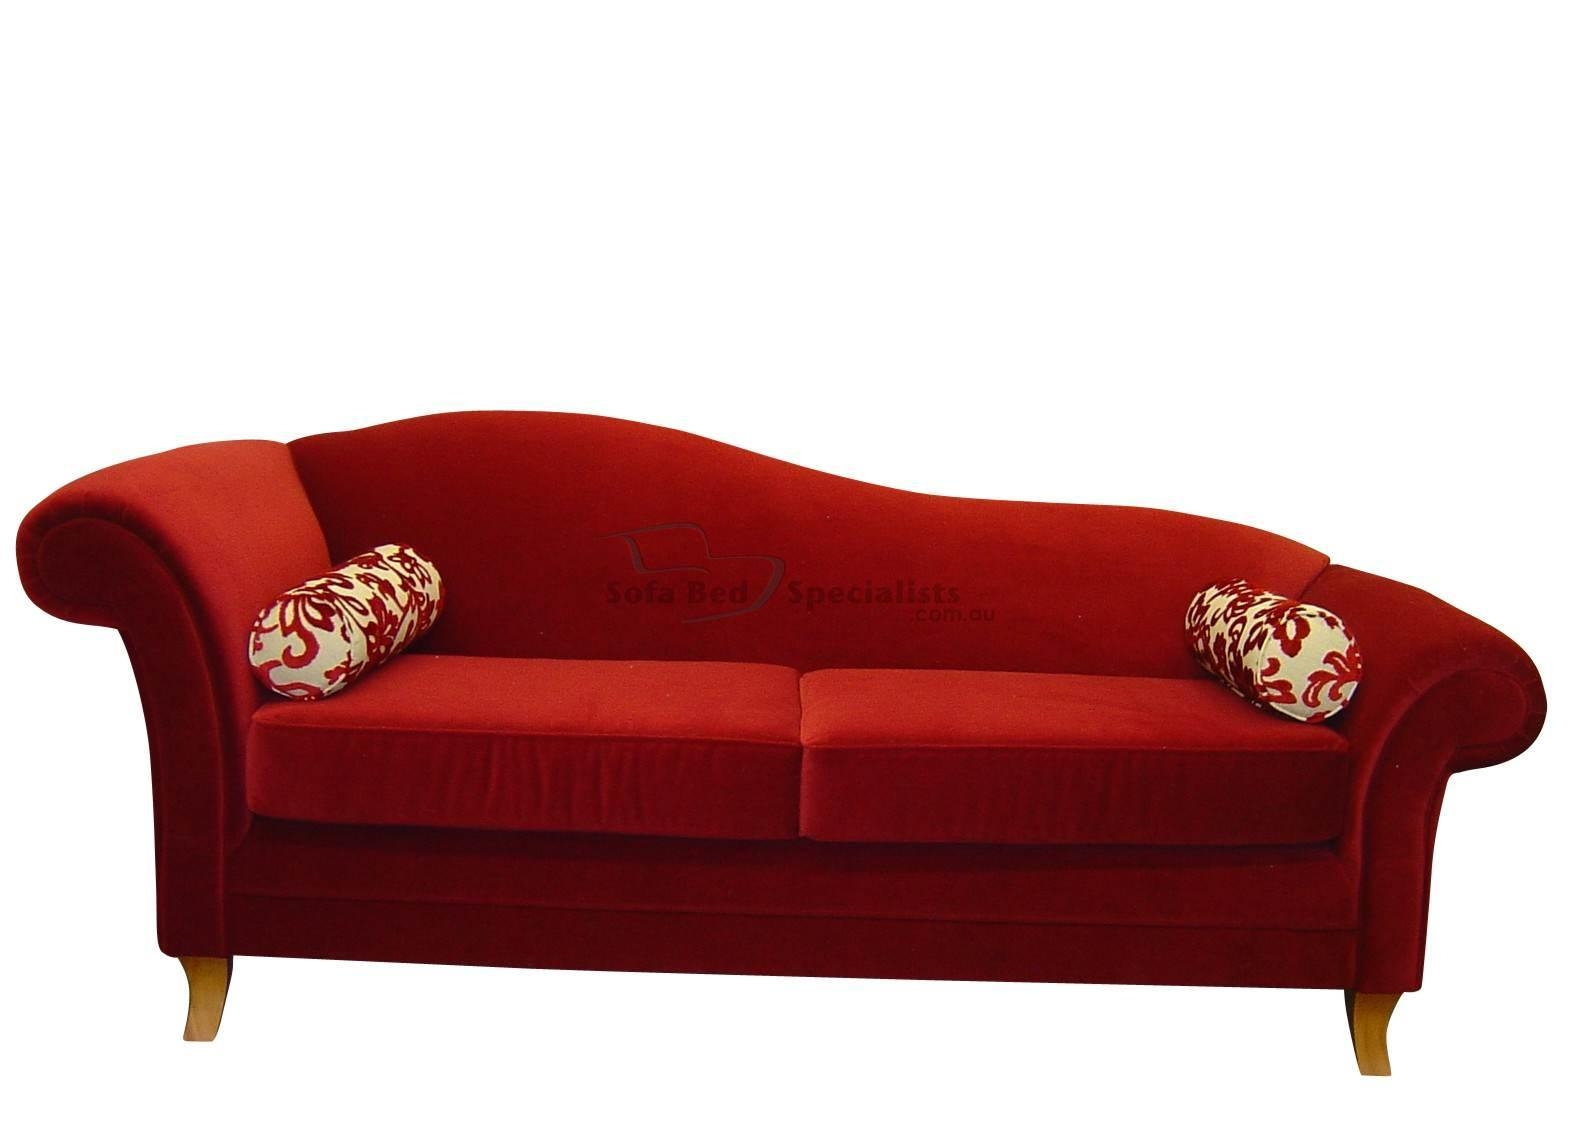 20 choices of red sofa beds ikea sofa ideas for Chaise bed sofa